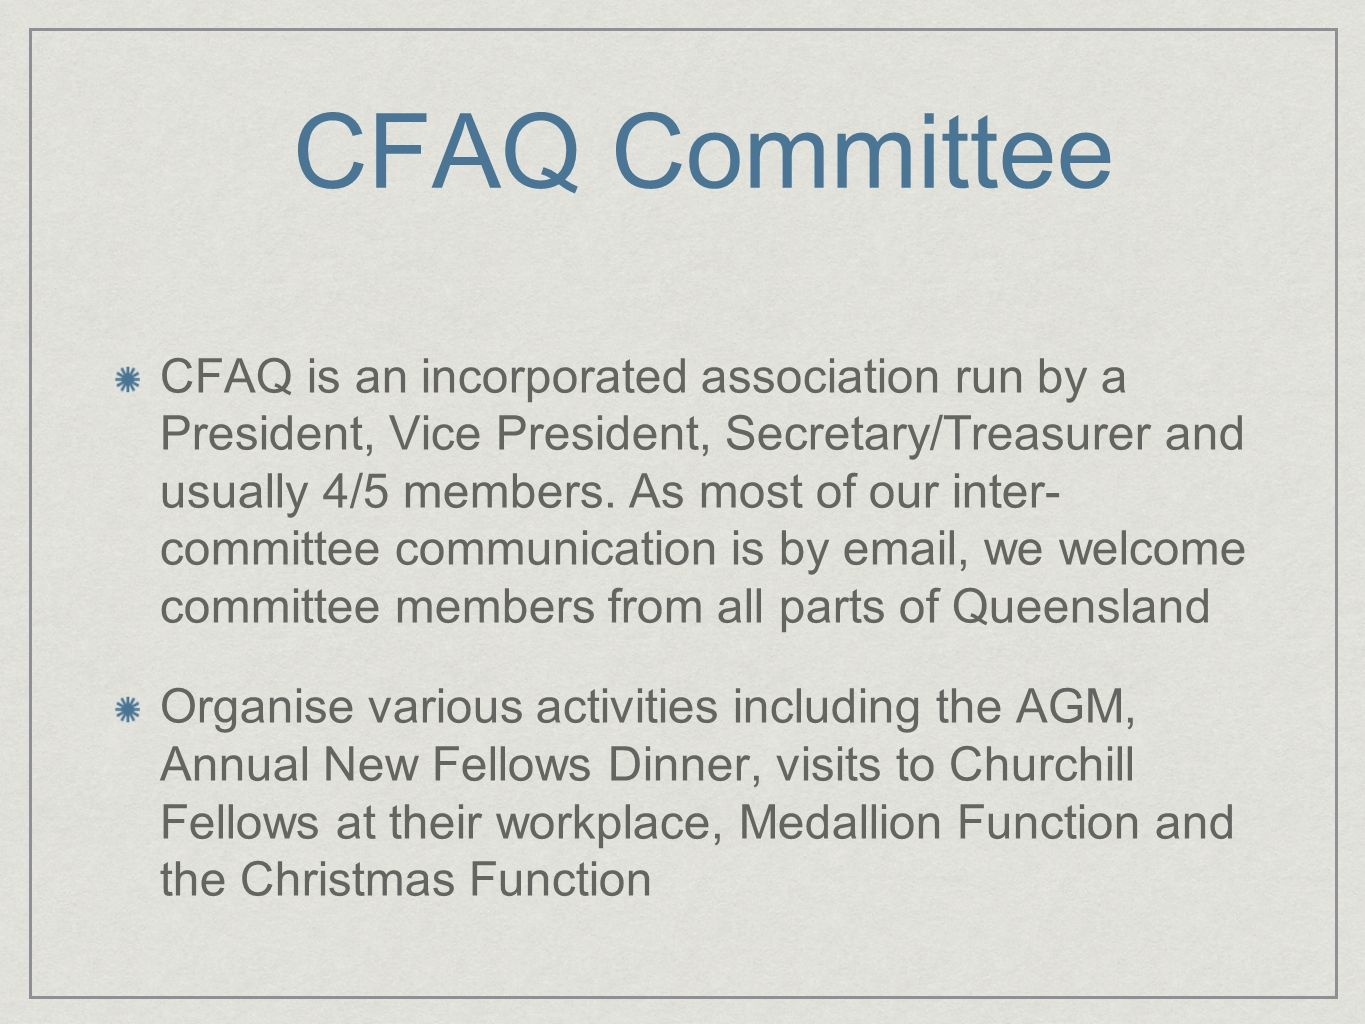 Functions AGM New Fellows Dinner Mentor Orientation Medallion Cocktails Christmas Function Ad Hoc individual fellows workshops / events / shows